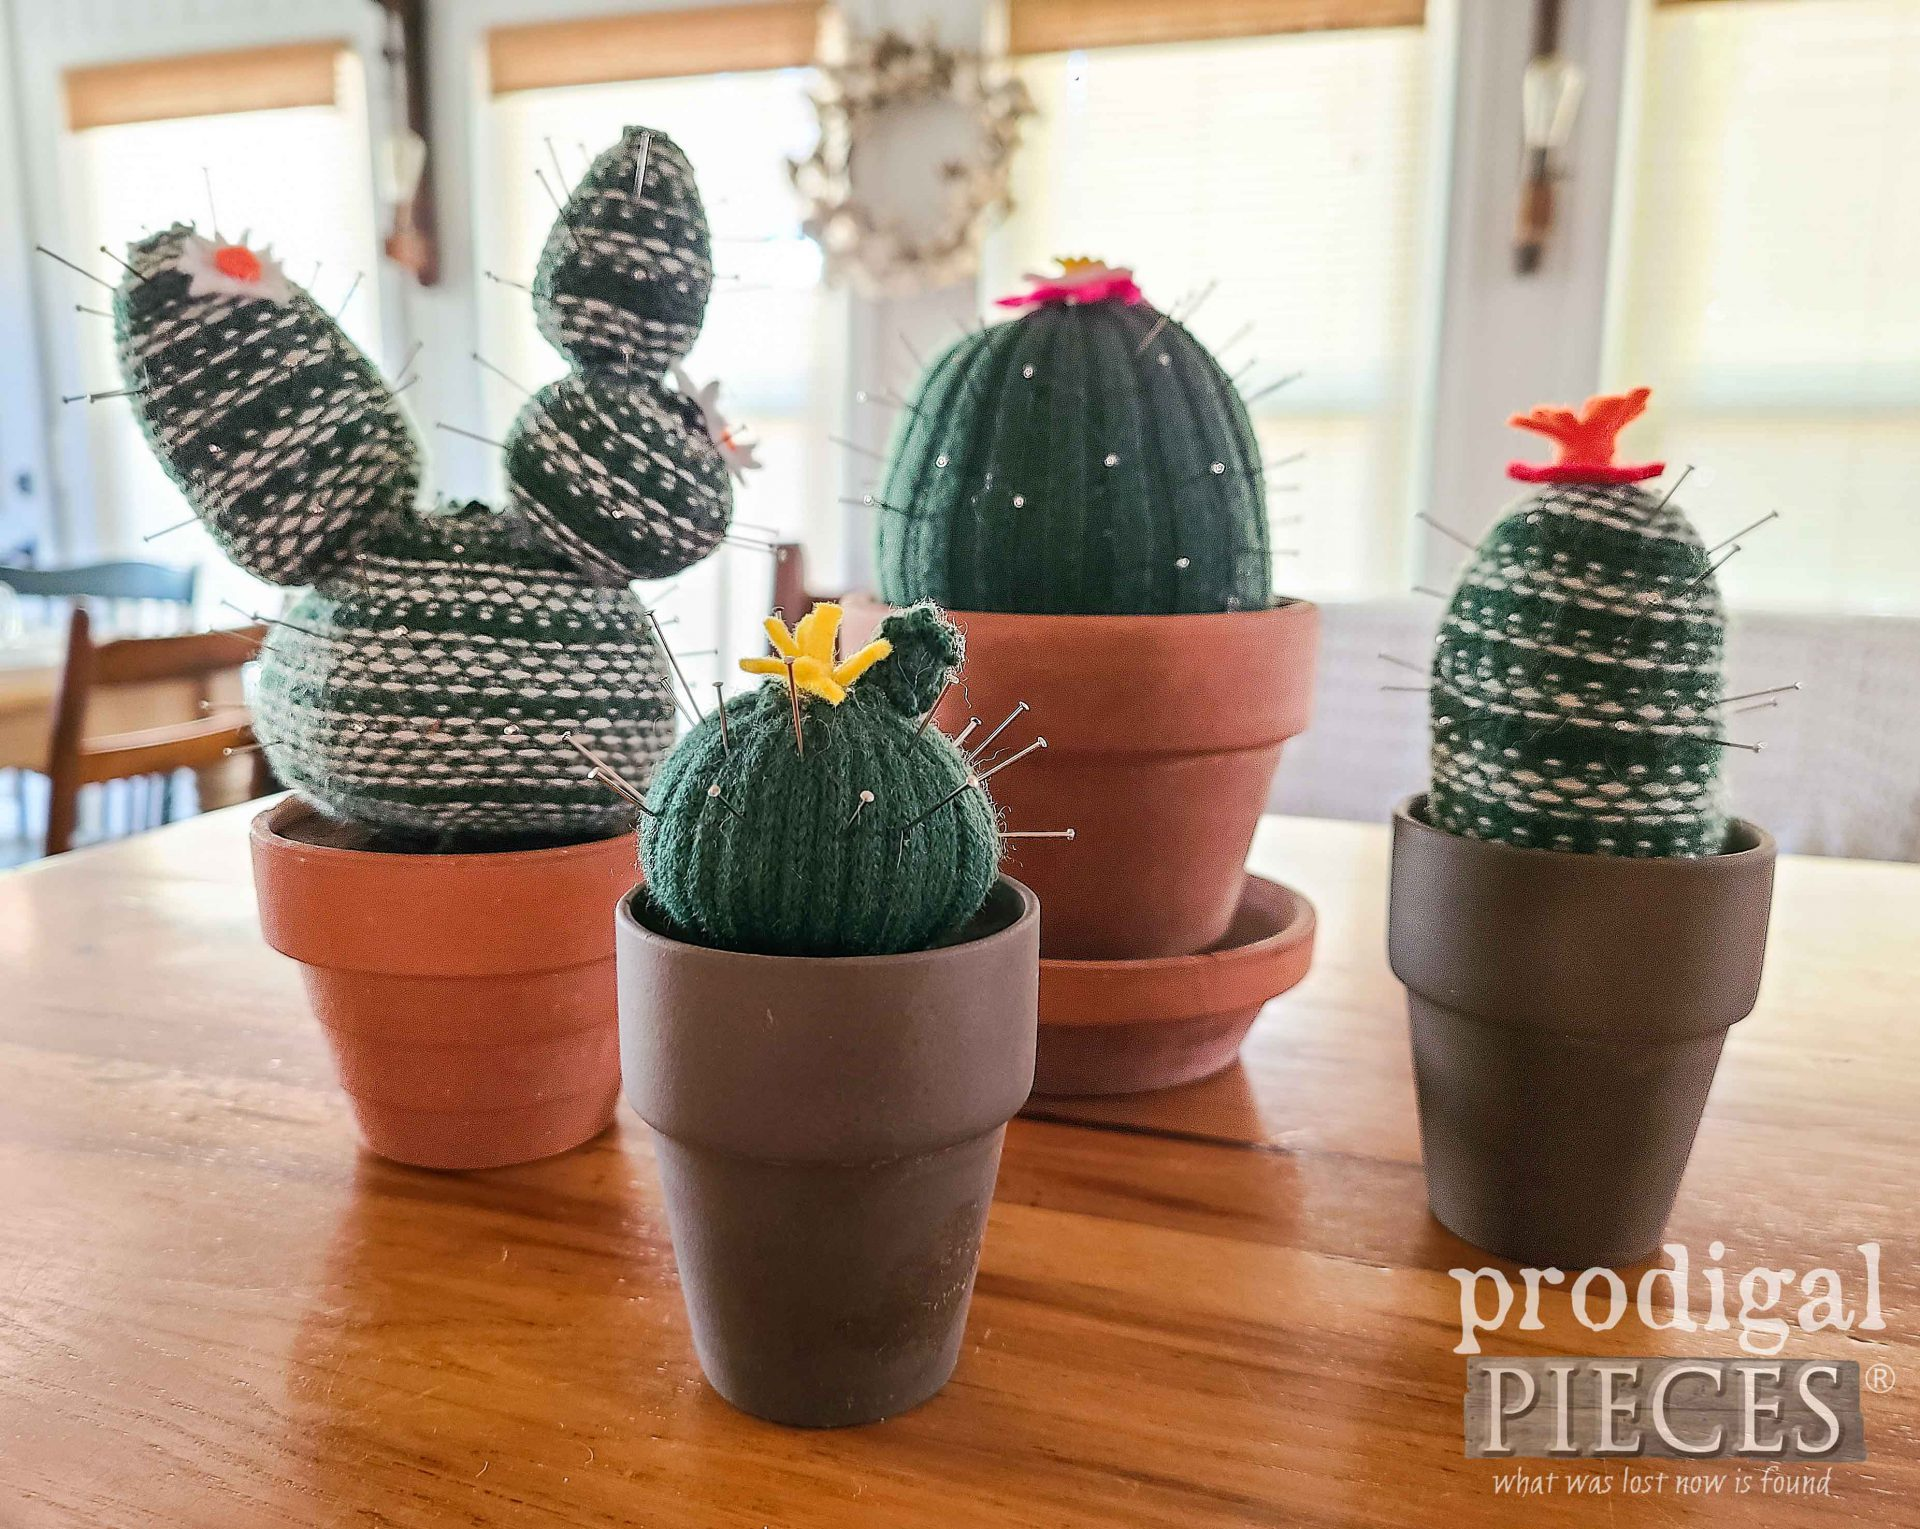 DIY Handmade Cactus Pincushion Created from Upcycled Sweater by Larissa of Prodigal Pieces | prodigalpieces.com #prodigalpieces #handmade #diy #crafts #succulent #giftidea